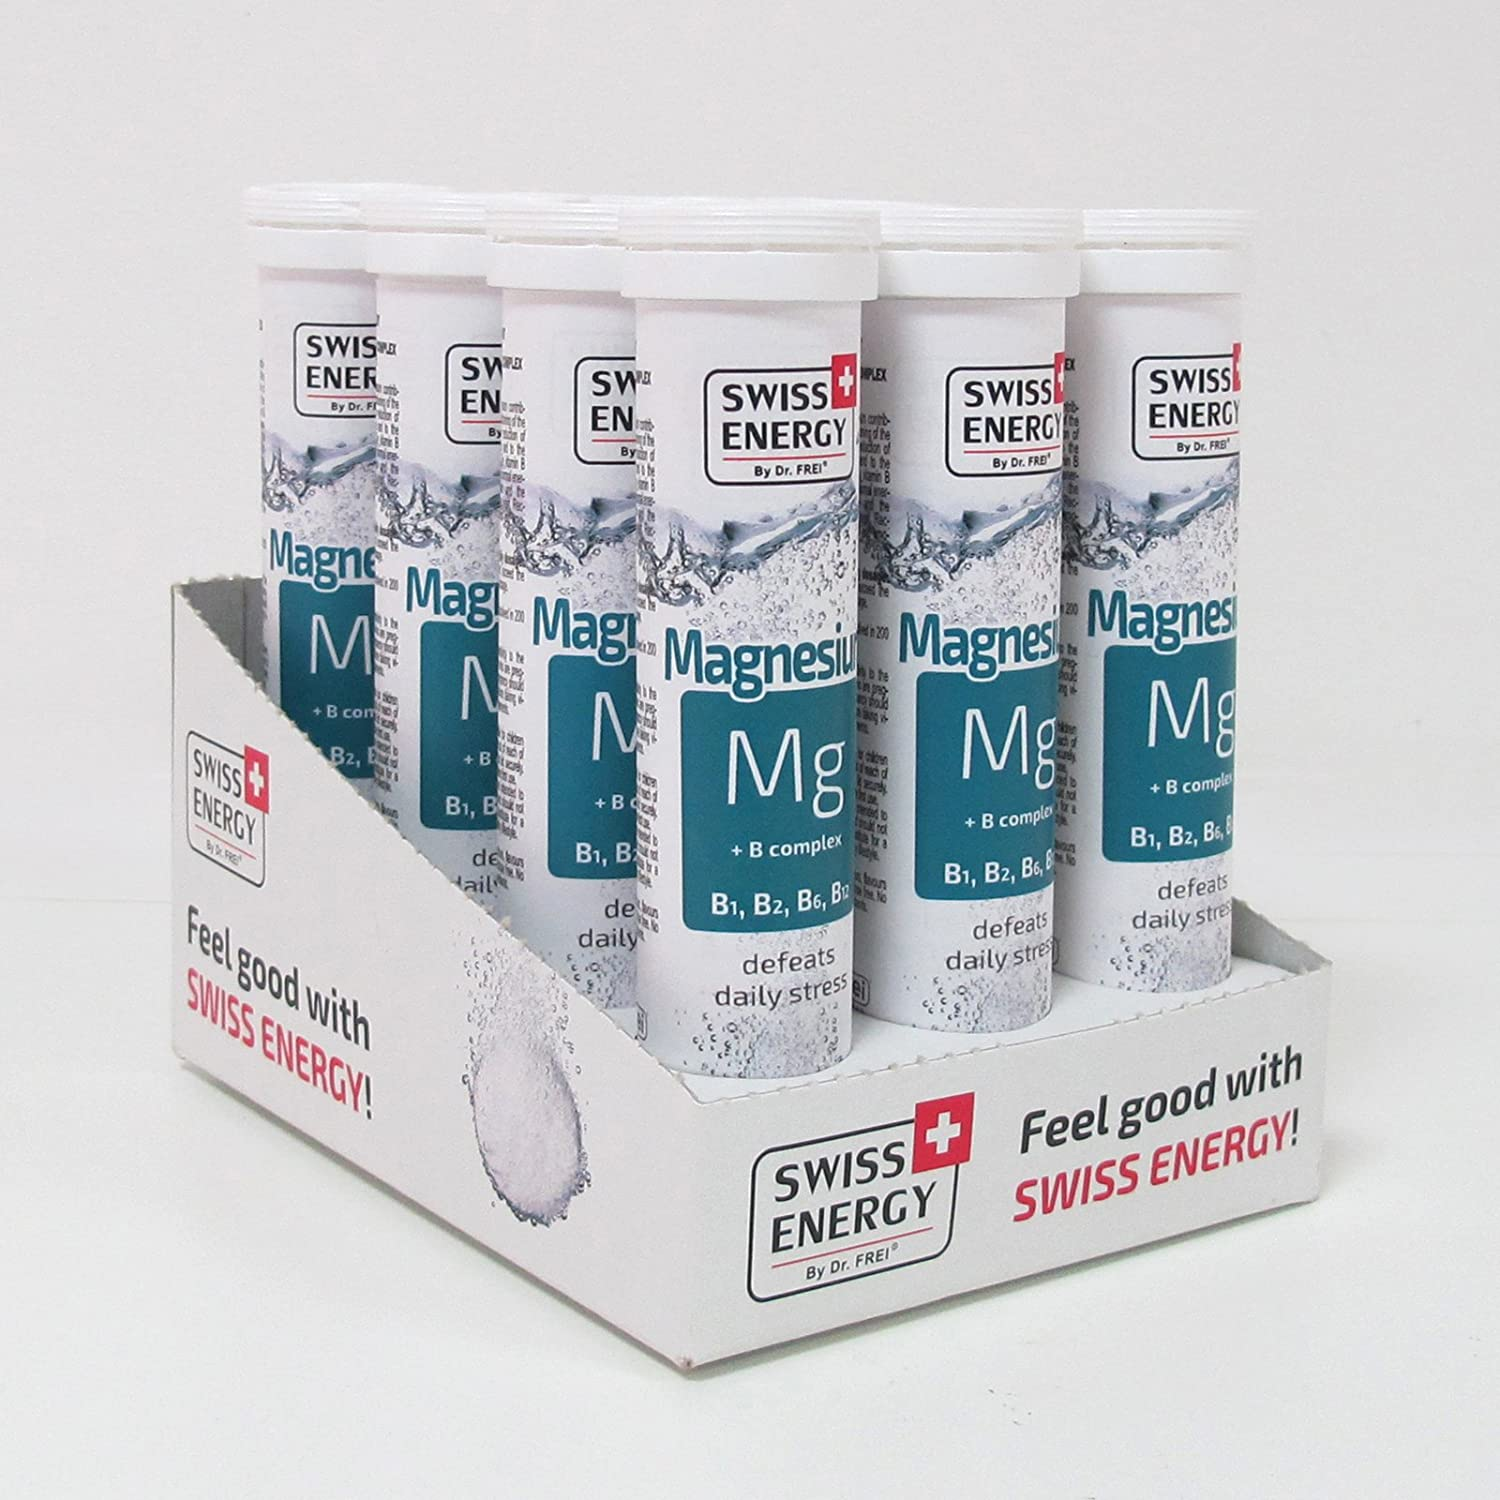 Amazon.com: Swiss Energy Magnesium + B Complex Effervescent (20 Tablets): Health & Personal Care